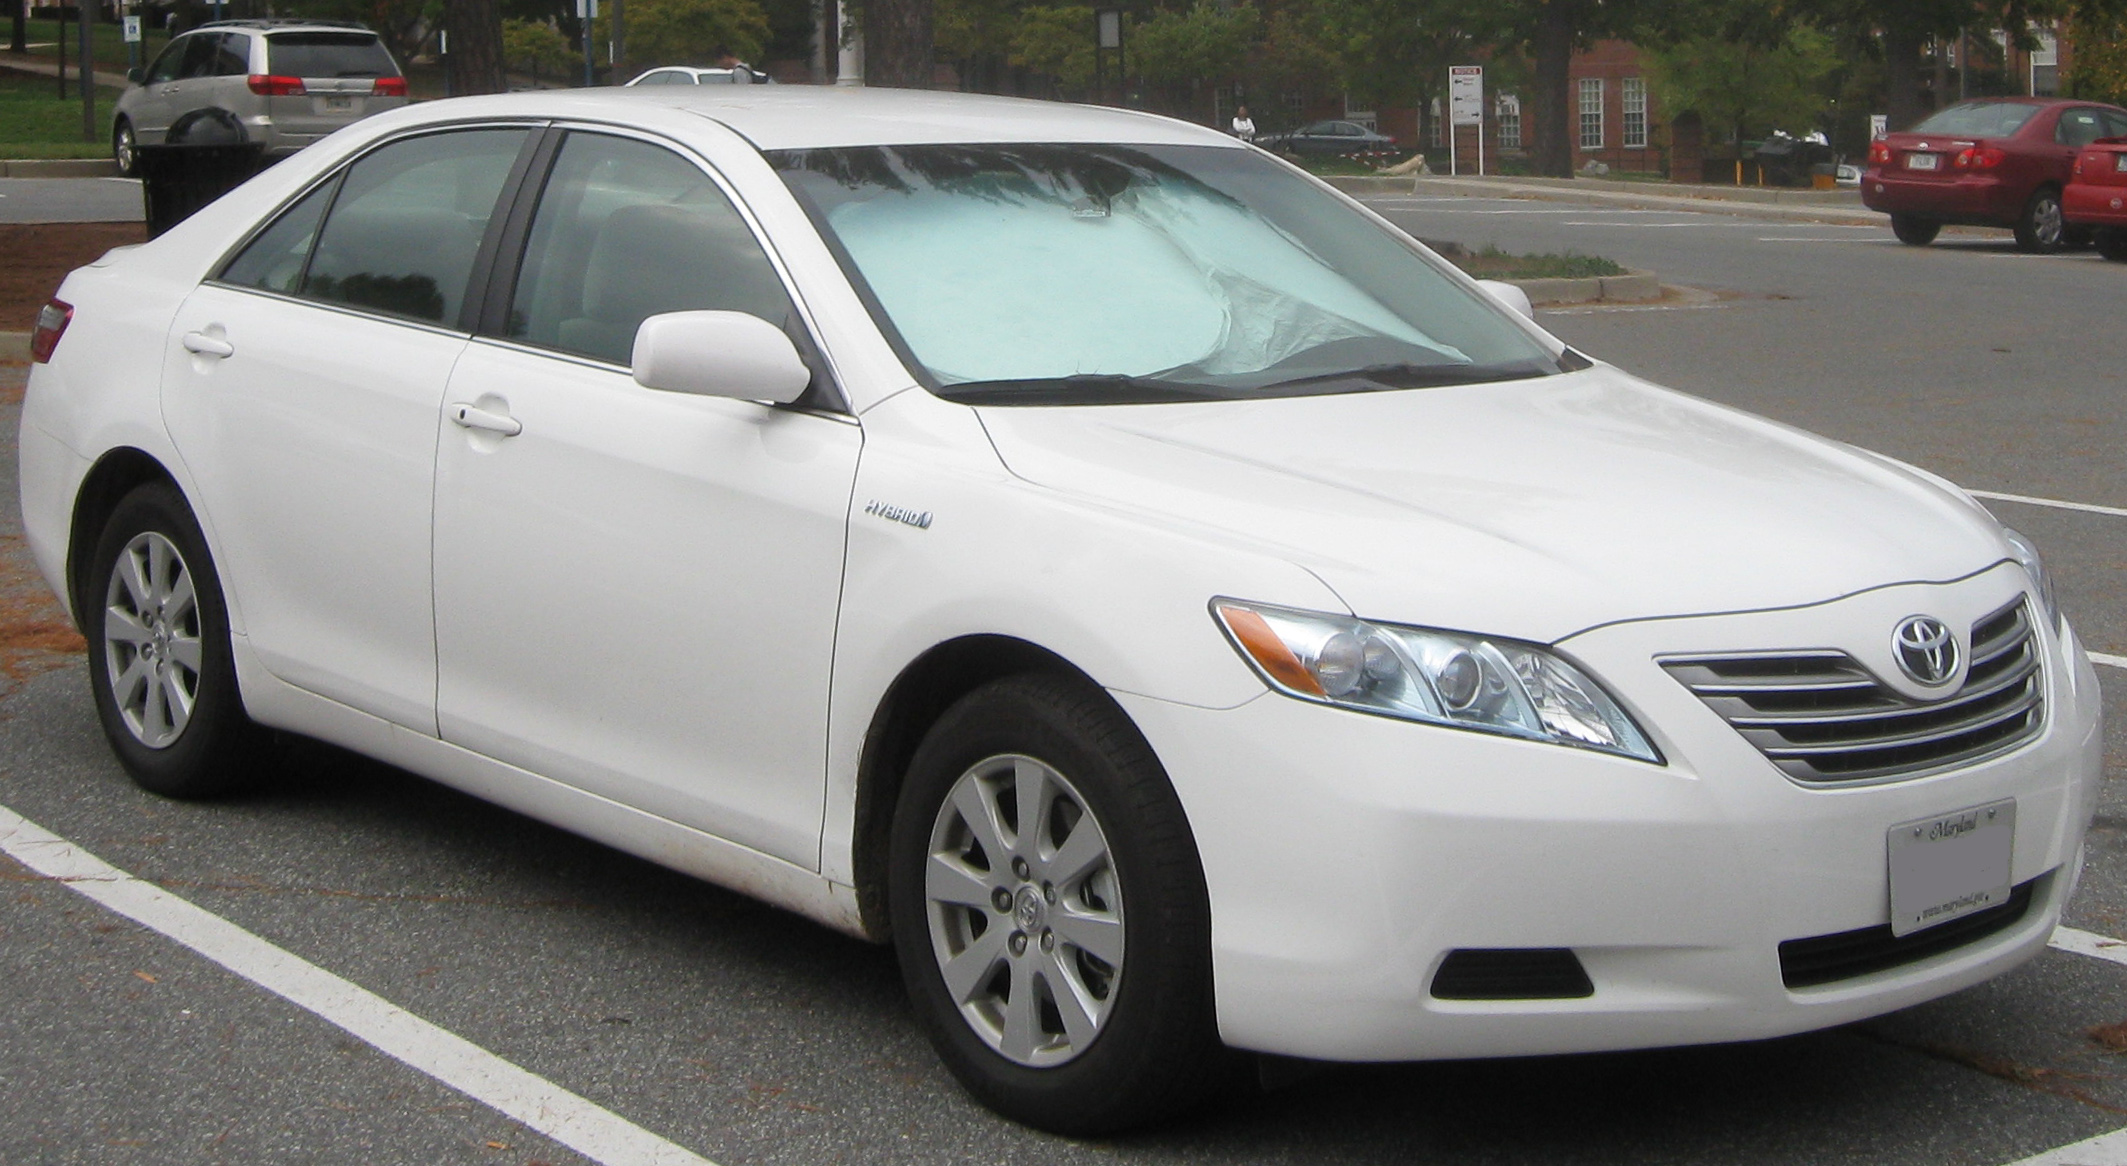 2010 Toyota Camry For Sale >> File:Toyota Camry Hybrid.jpg